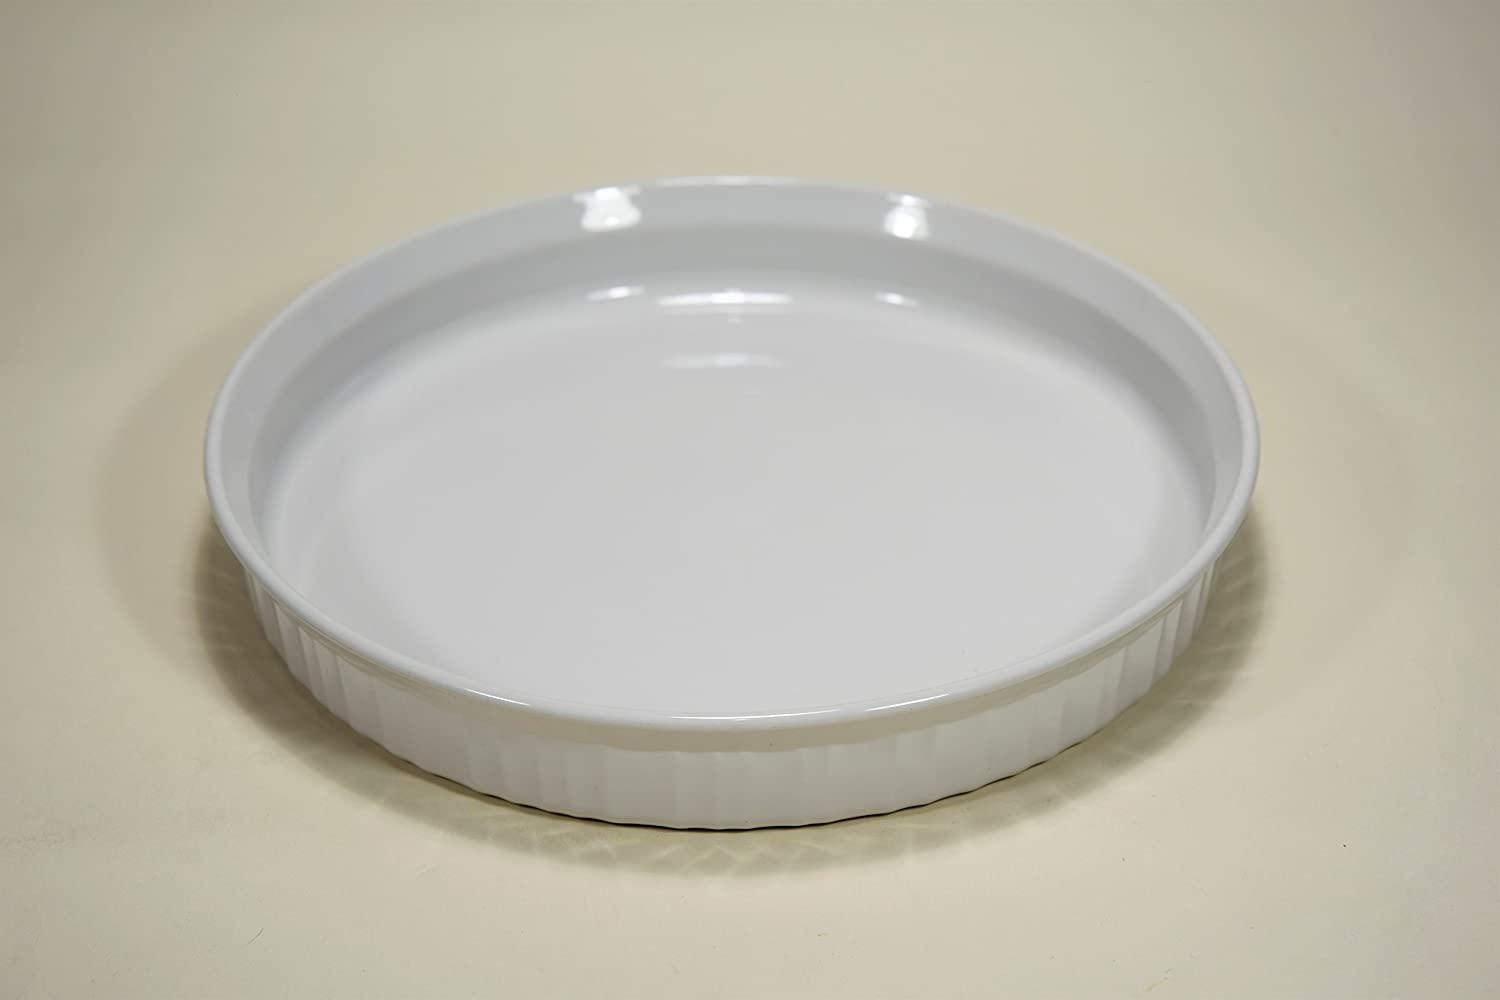 """Corning Ware French White Vintage 10 1/2"""" Quiche Baking PAN Dish Casserole Stamped F-3-B F3B 10 INCH Original Smooth Bottom PYROCERAM Glass (not Newer Stoneware Version) Made in USA"""